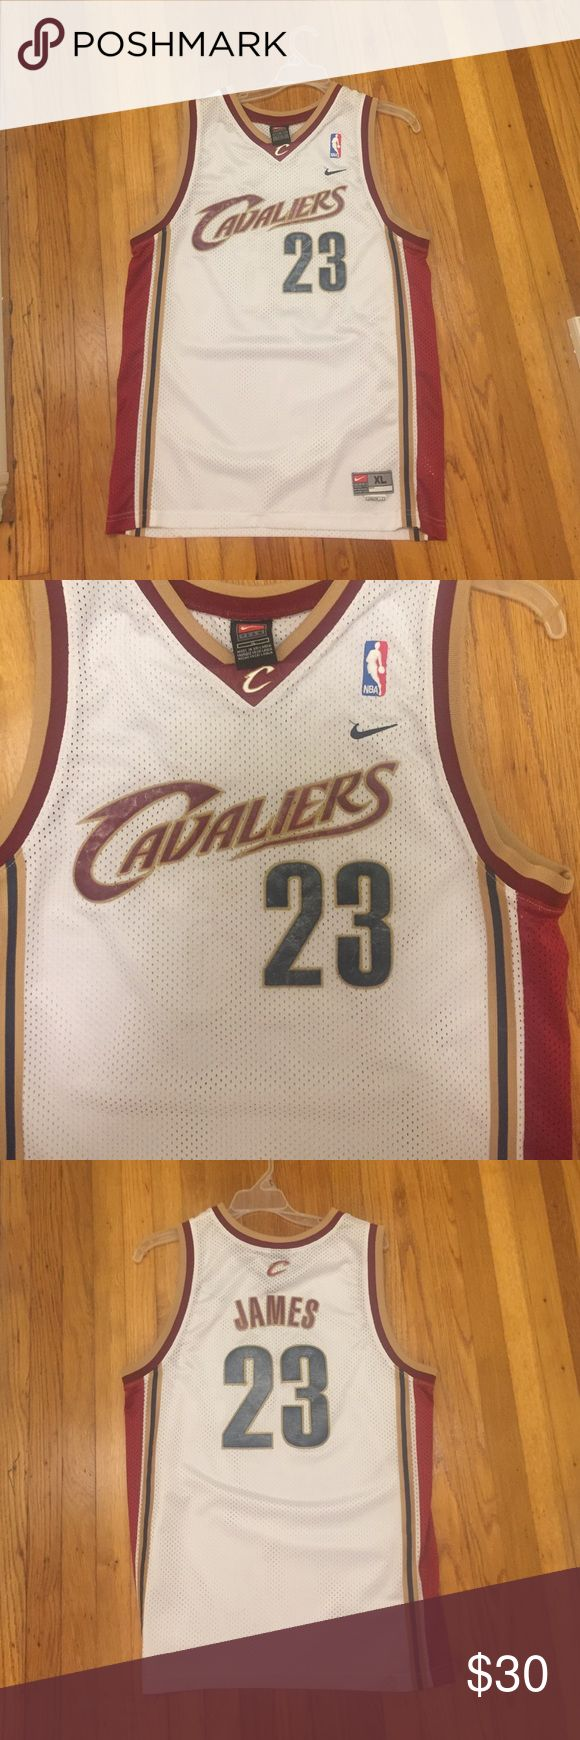 Lebron James rookie year jersey youth XL Vintage Lebron  James jersey in used condition from his rookie year in a size youth XL Nike Shirts & Tops Tank Tops